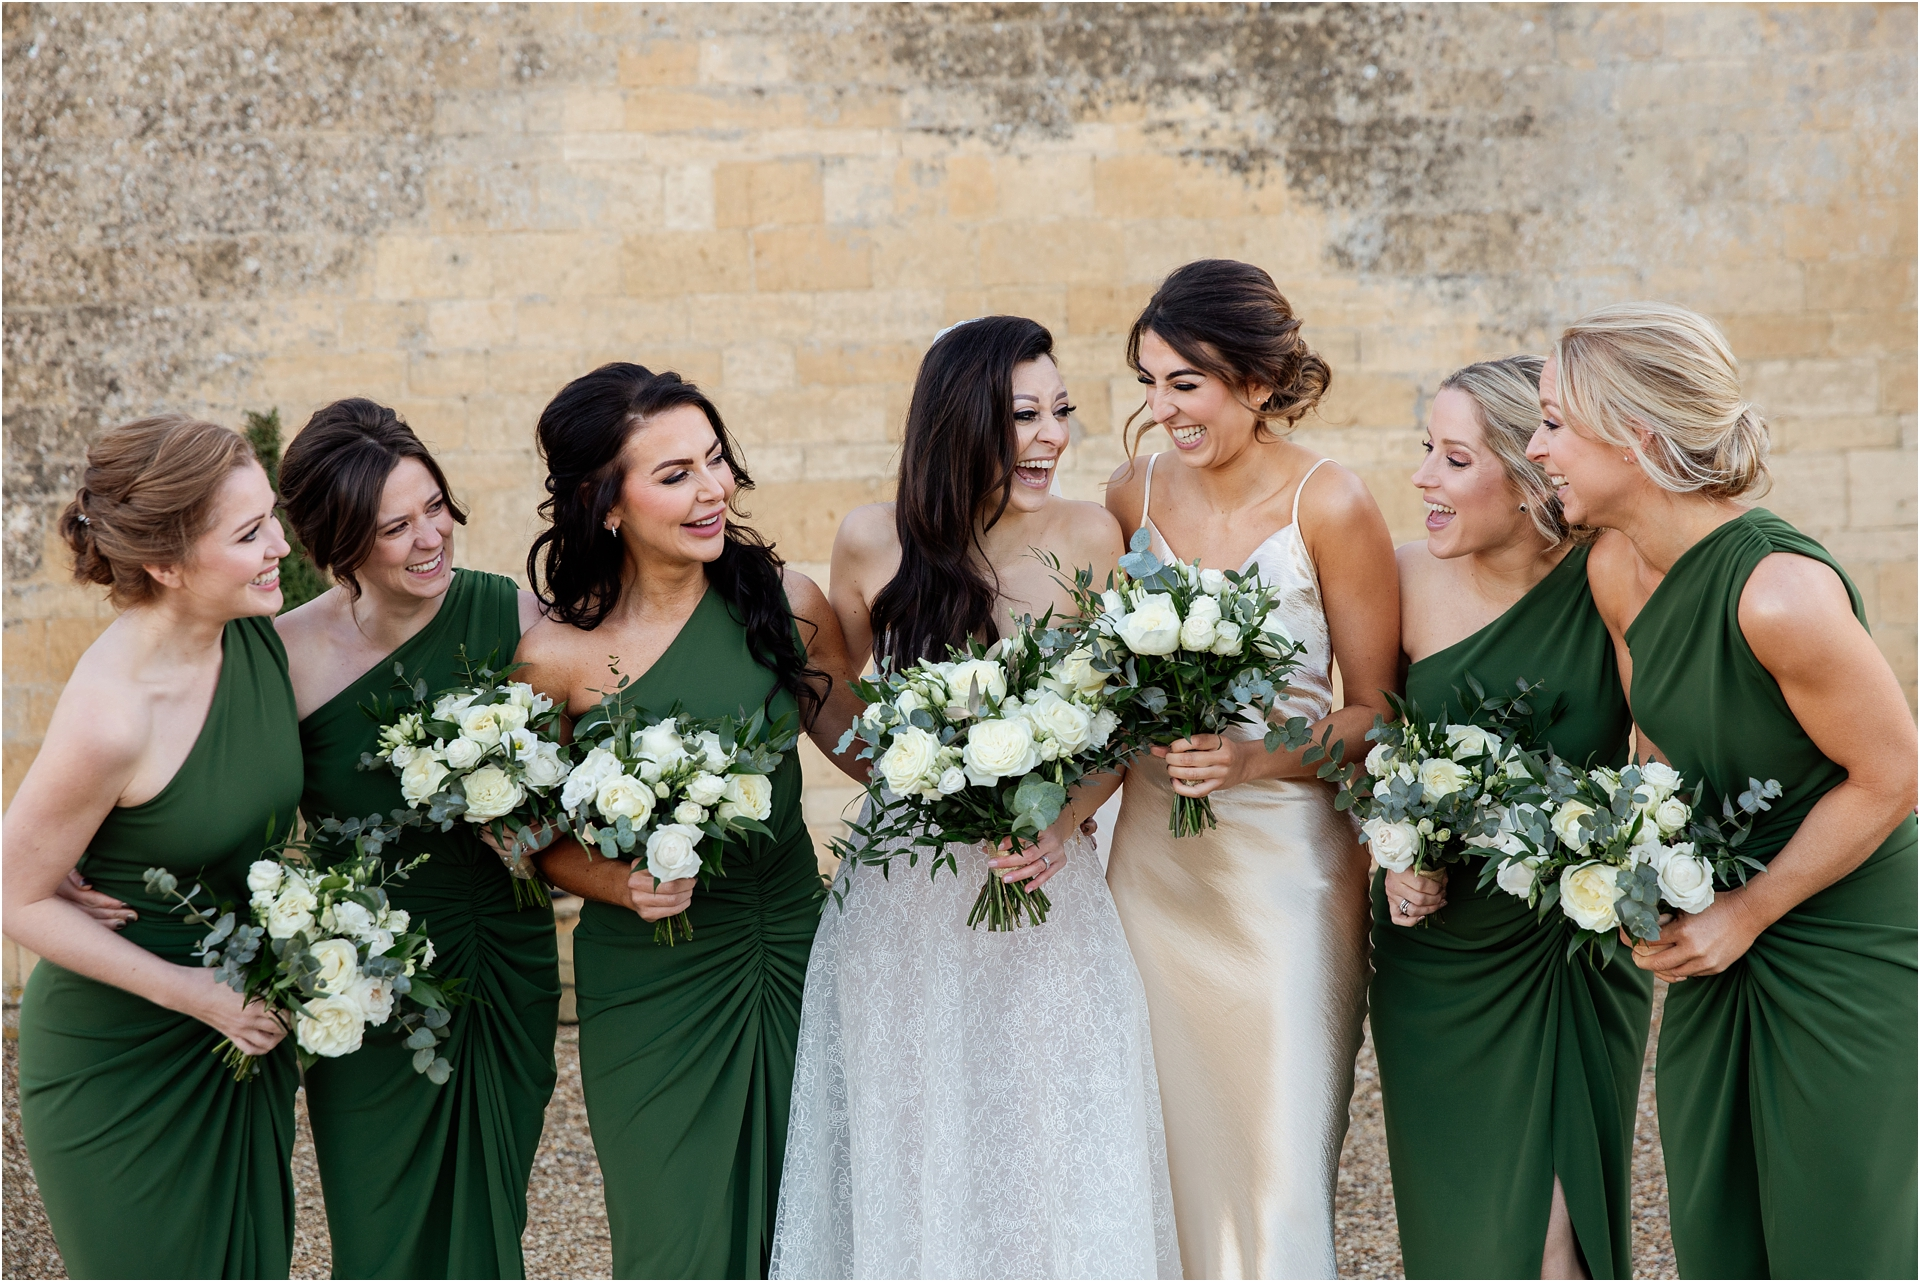 Bridal party at Lapstone Barn wedding